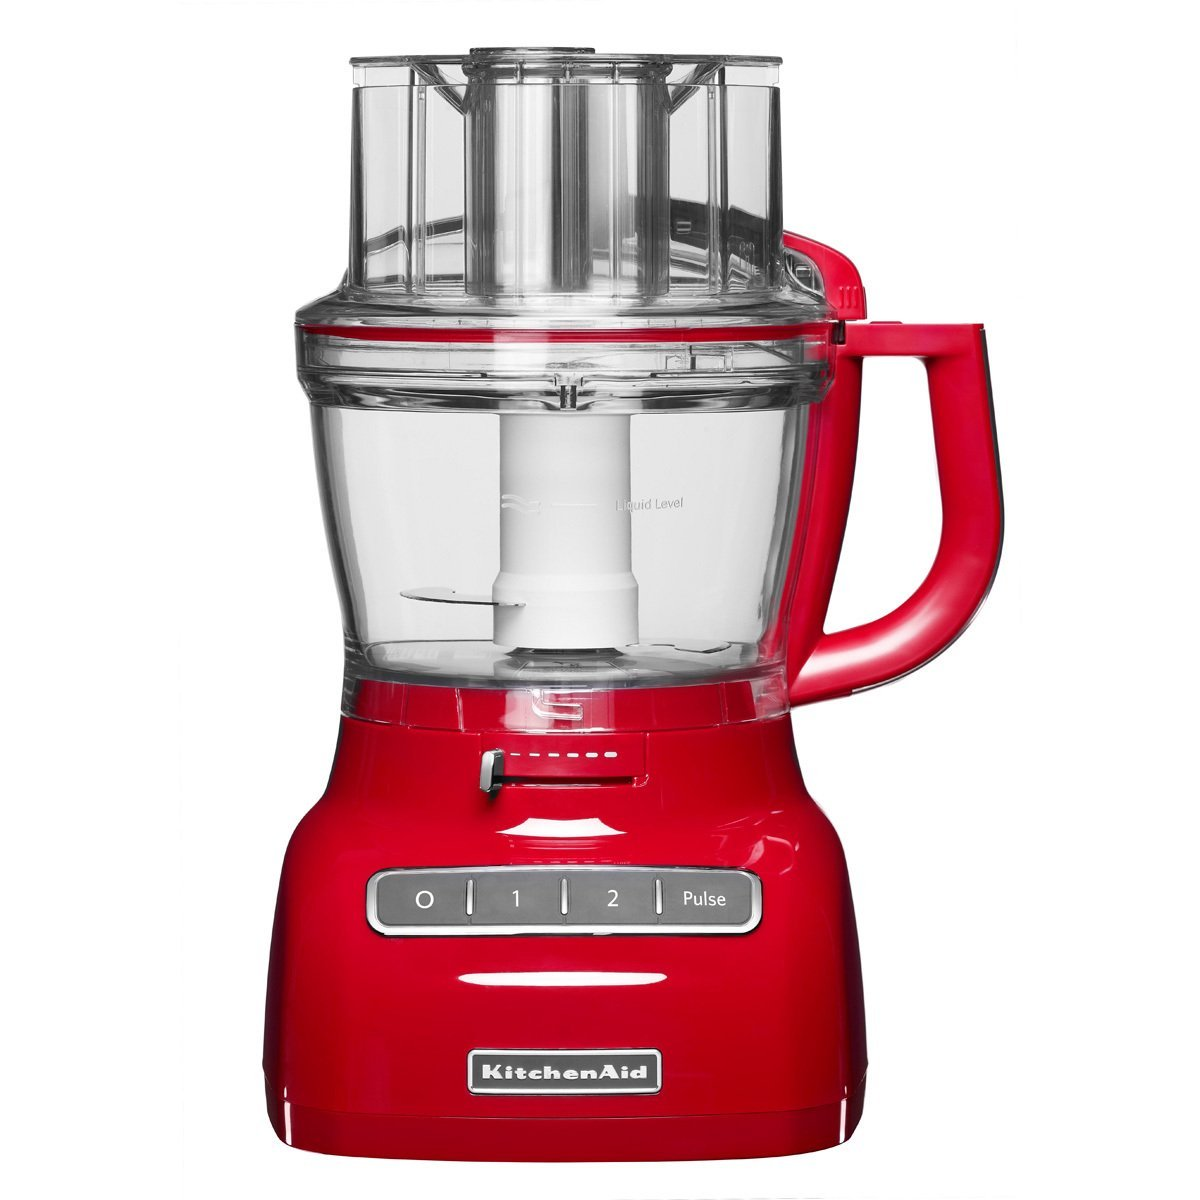 kitchenaid food processor 5kfp1335 recensione e opinioni ForKitchenaid Opinioni